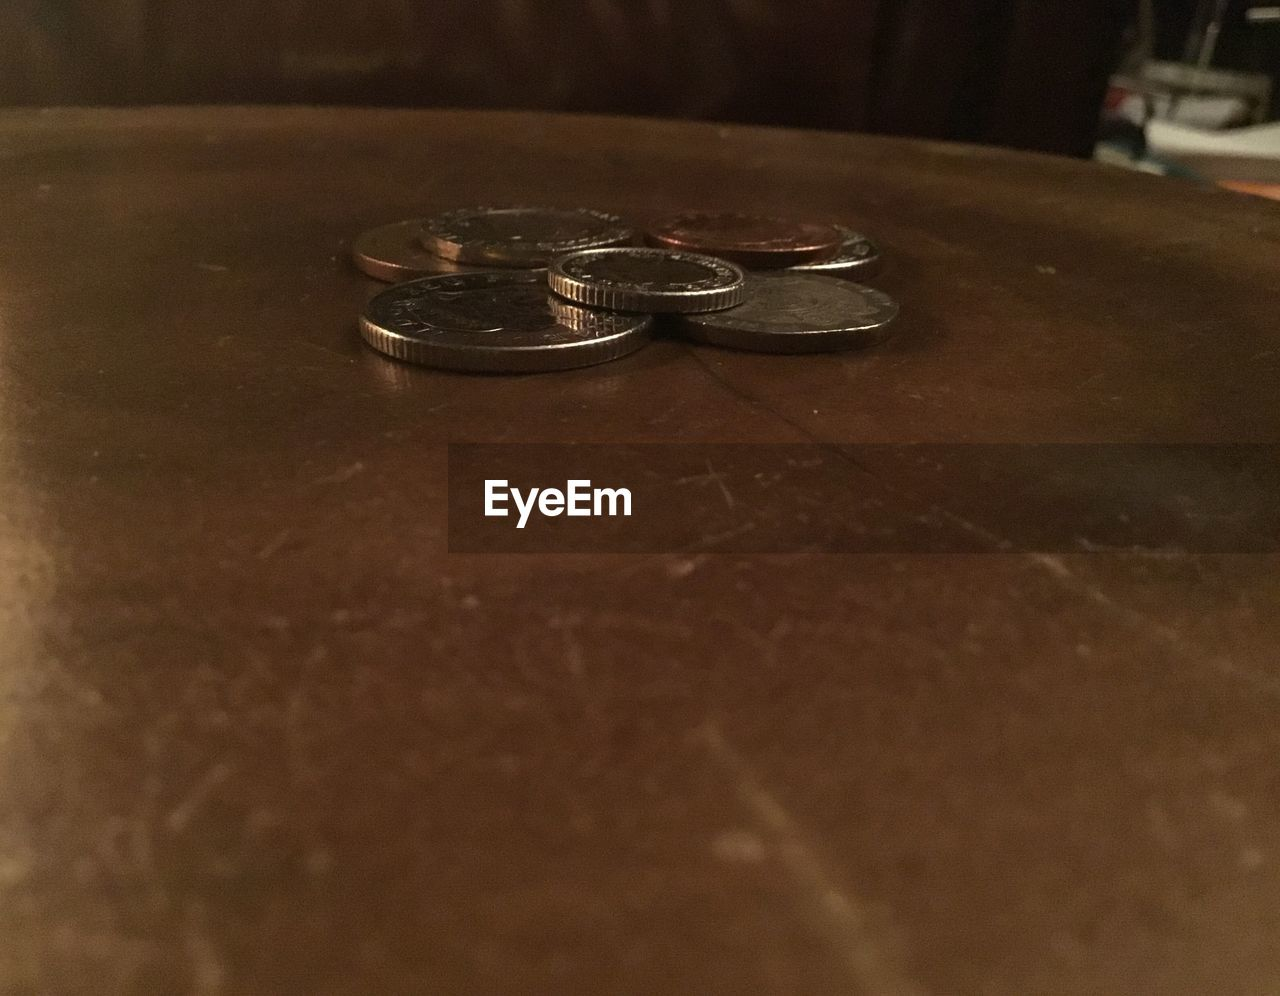 coin, table, indoors, no people, close-up